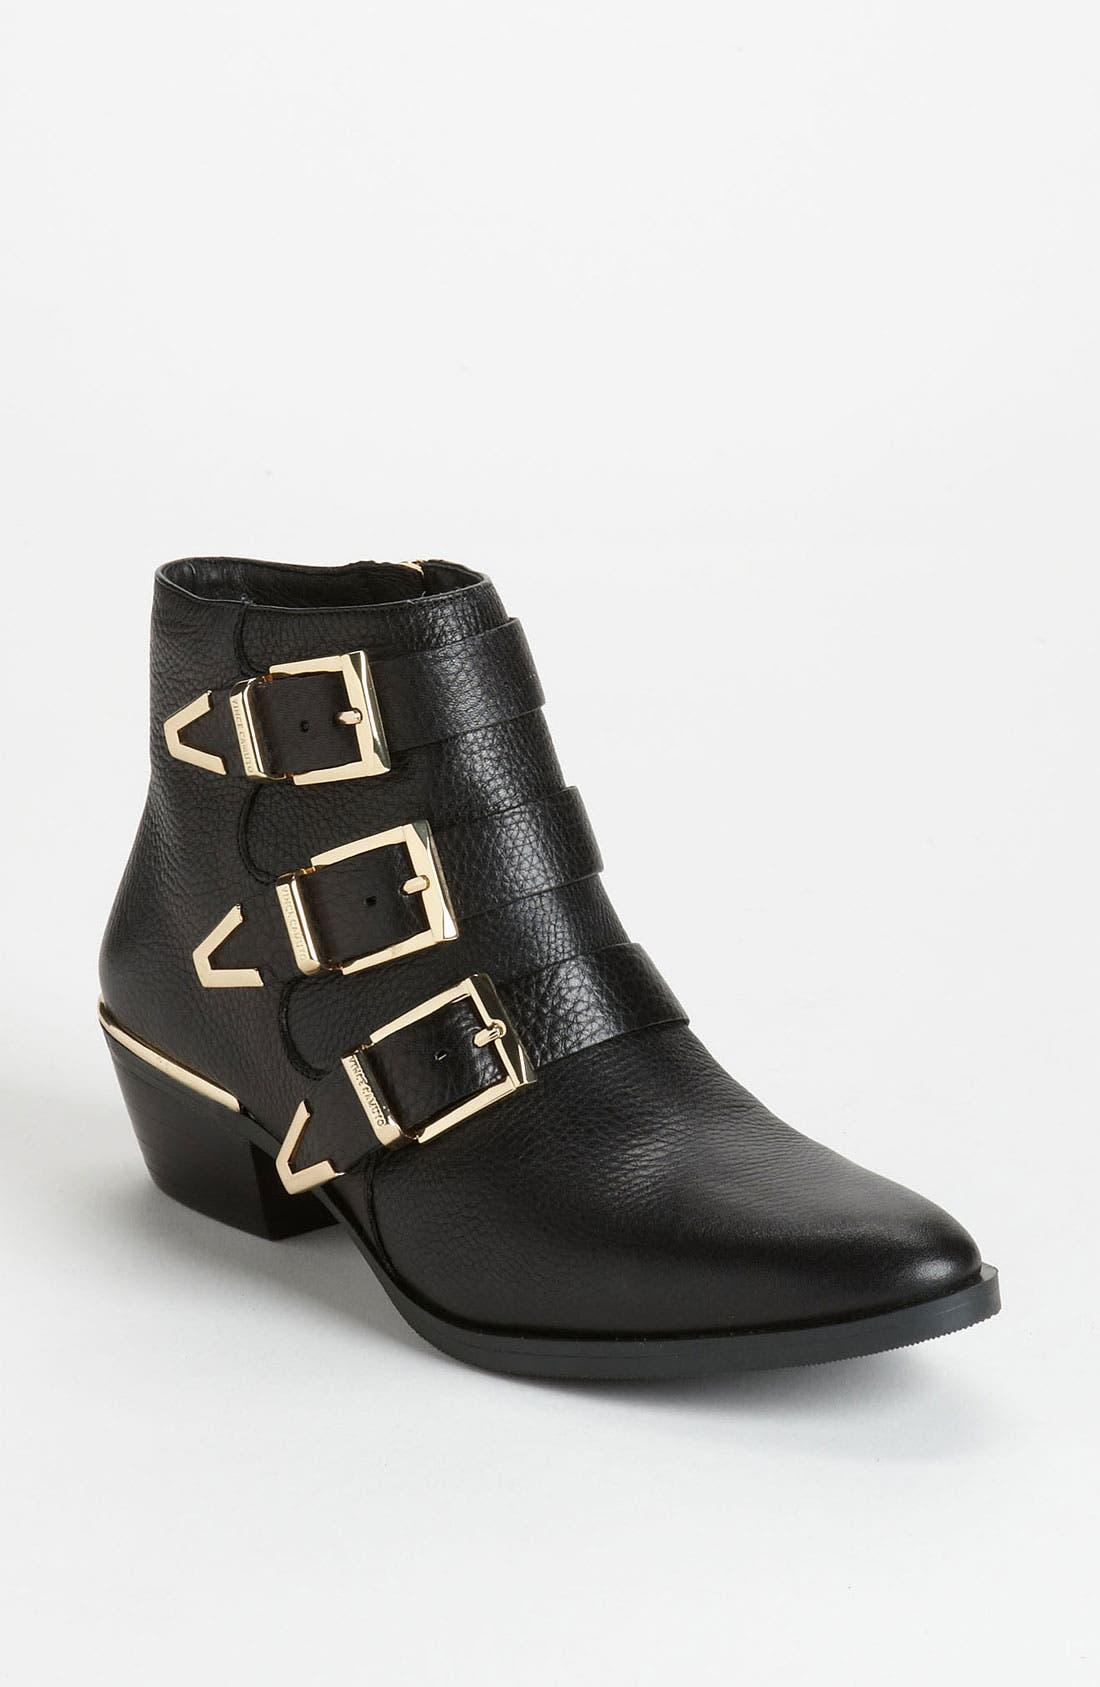 Alternate Image 1 Selected - Vince Camuto 'Tipper' Boot